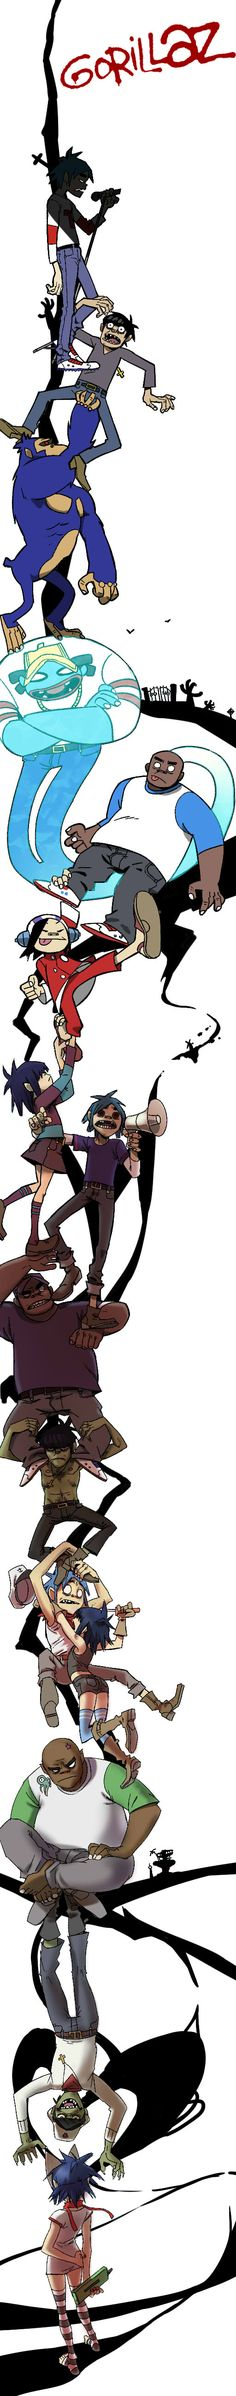 Gorillaz - this is so awesome just love love love :3